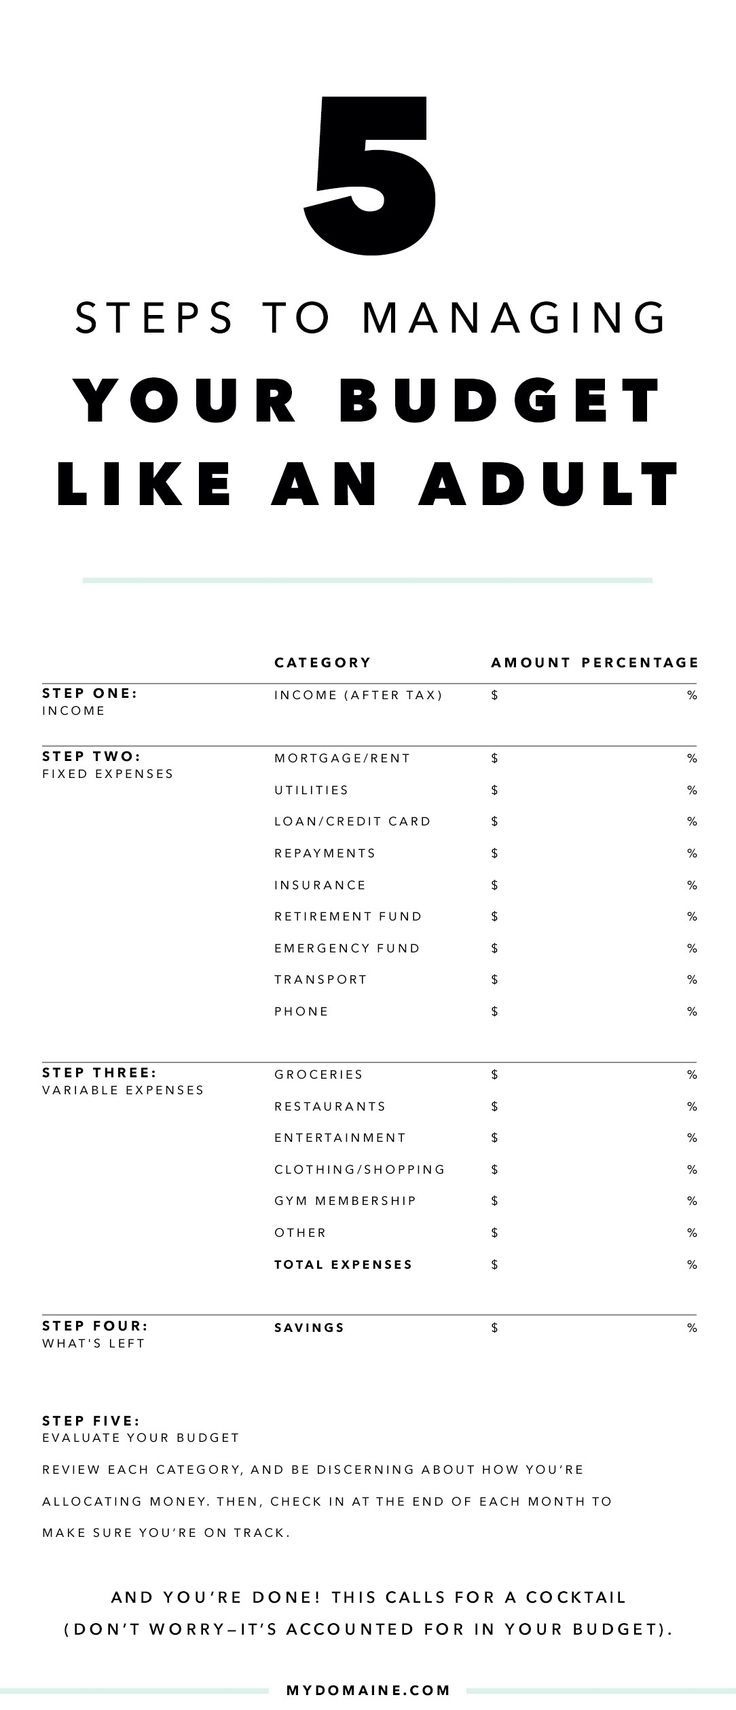 Uncategorized Personal Finance Worksheets best 20 personal finance ideas on pinterest budgeting everything you need to know manage your finances like an adult via mydomaine worksheetsbudgeting 101financial